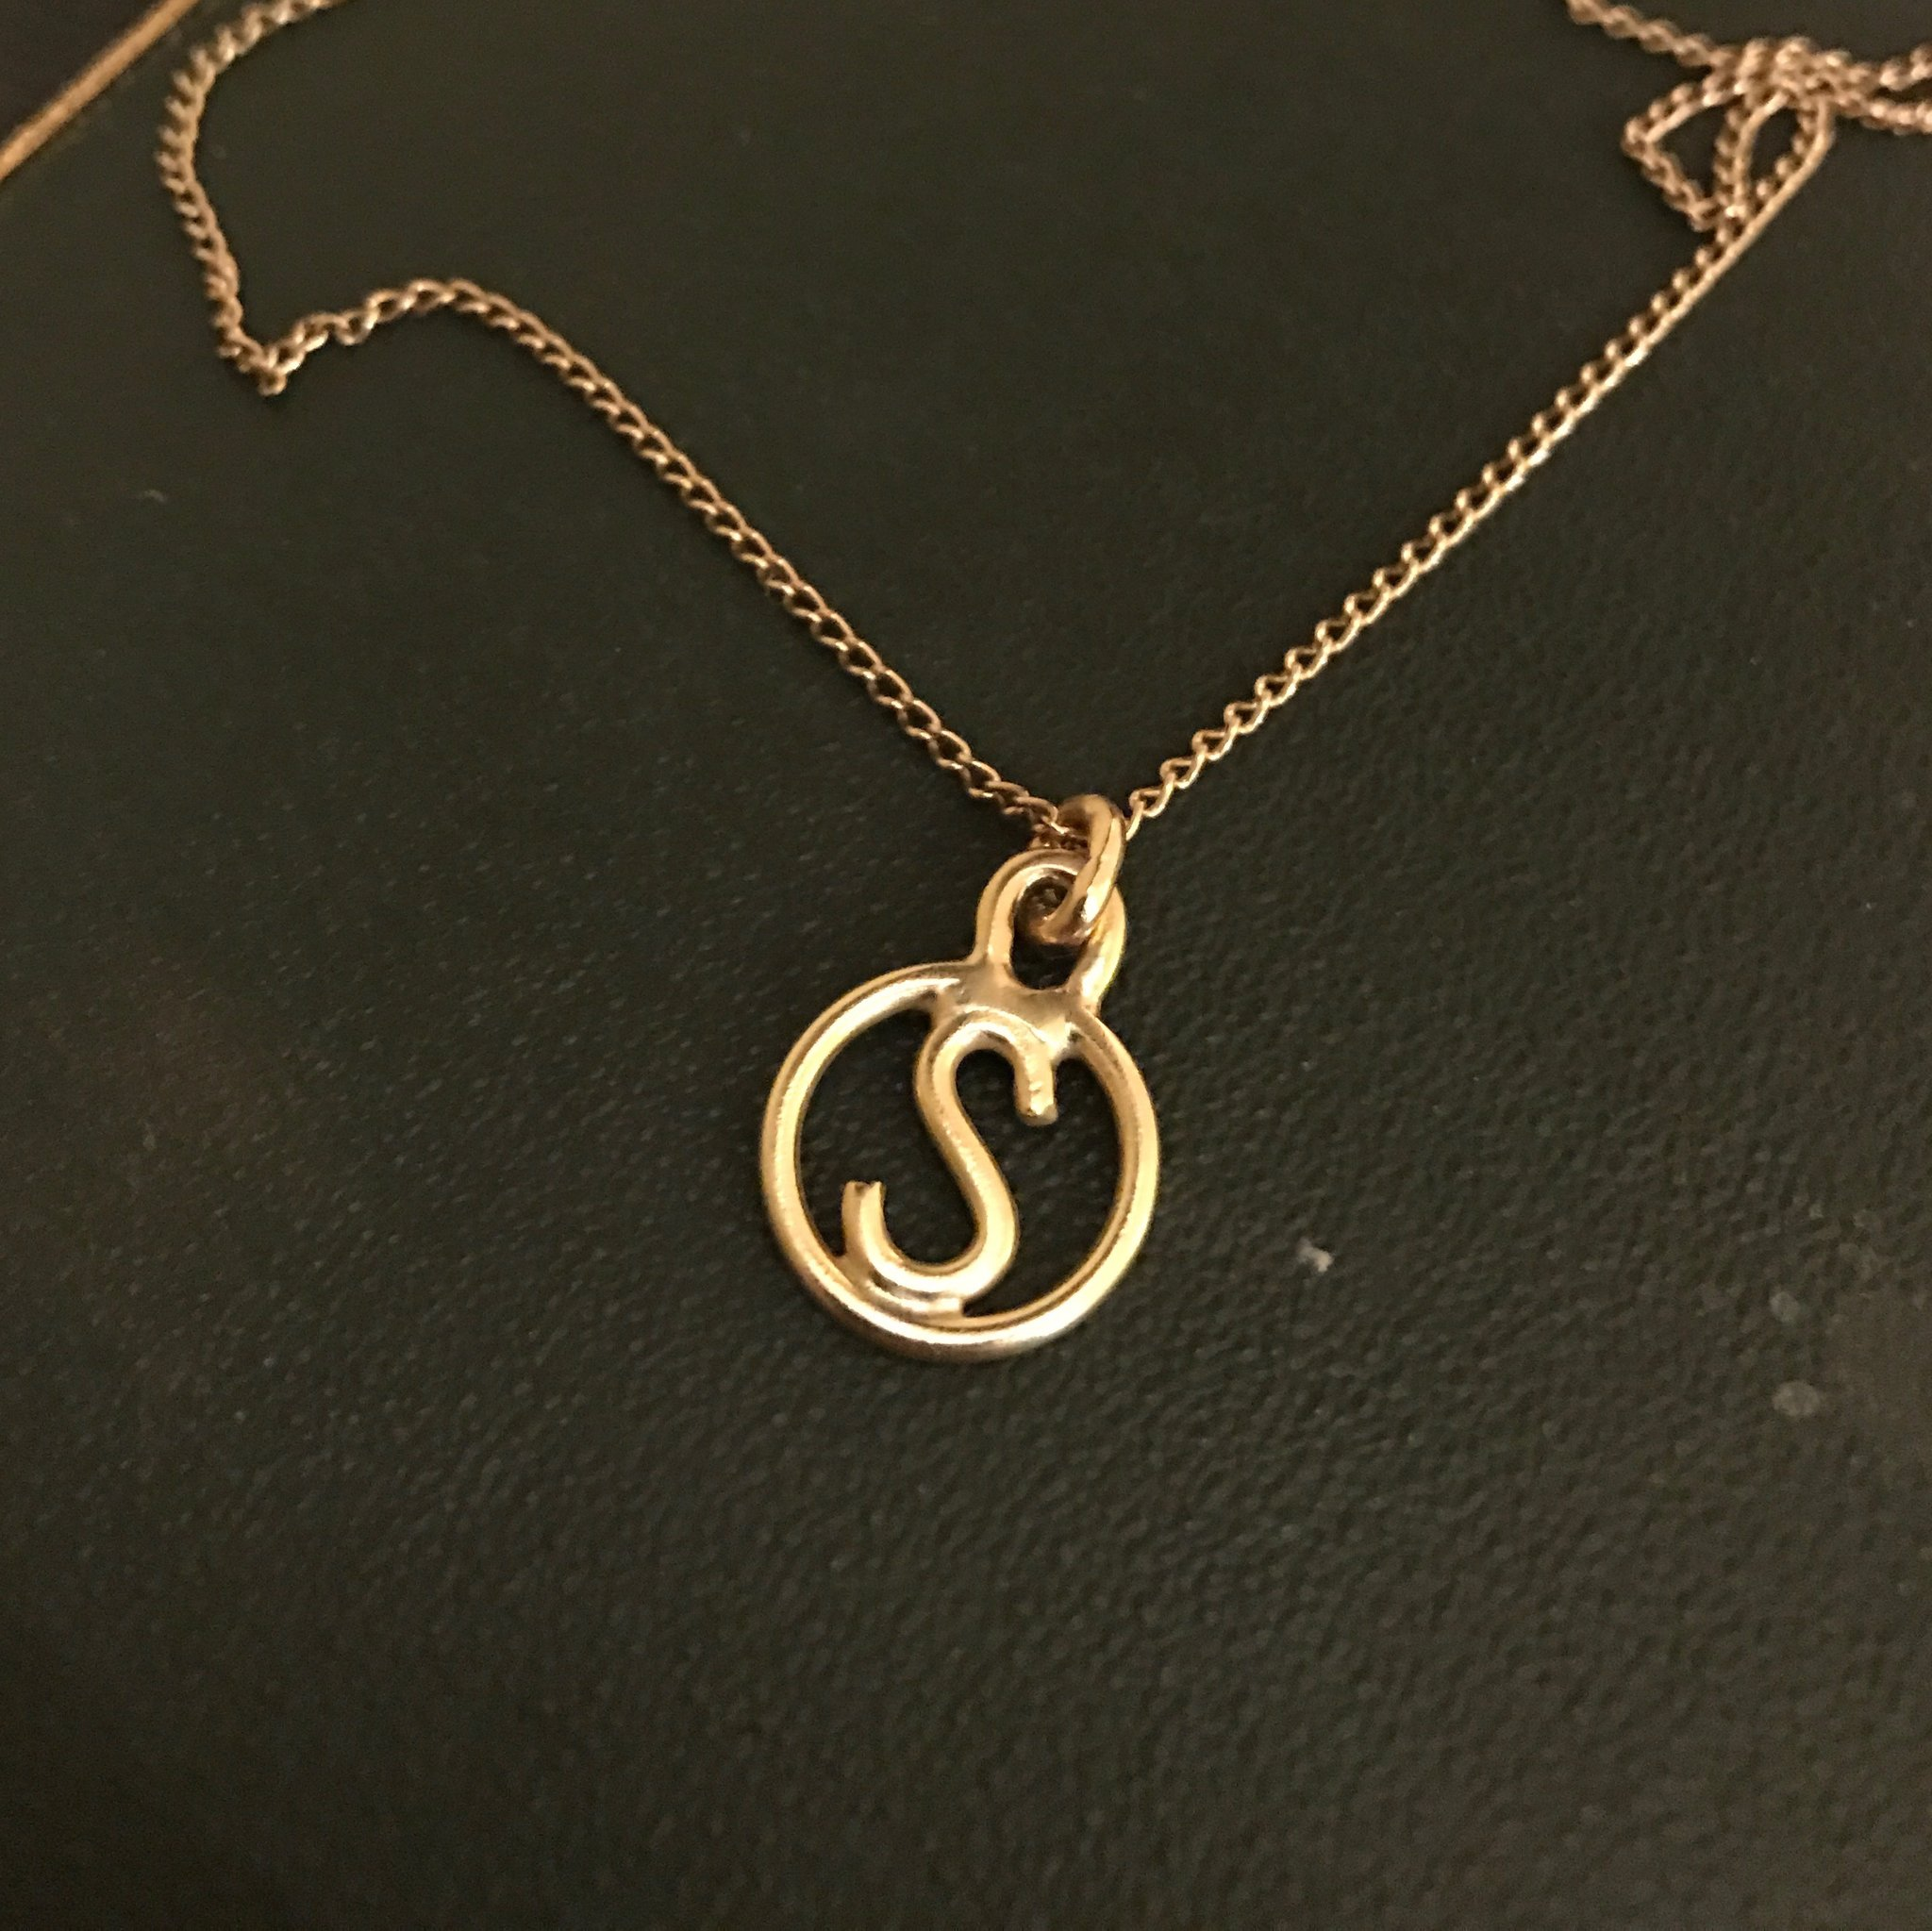 18CT YELLOW GOLD INTIAL PENDANT